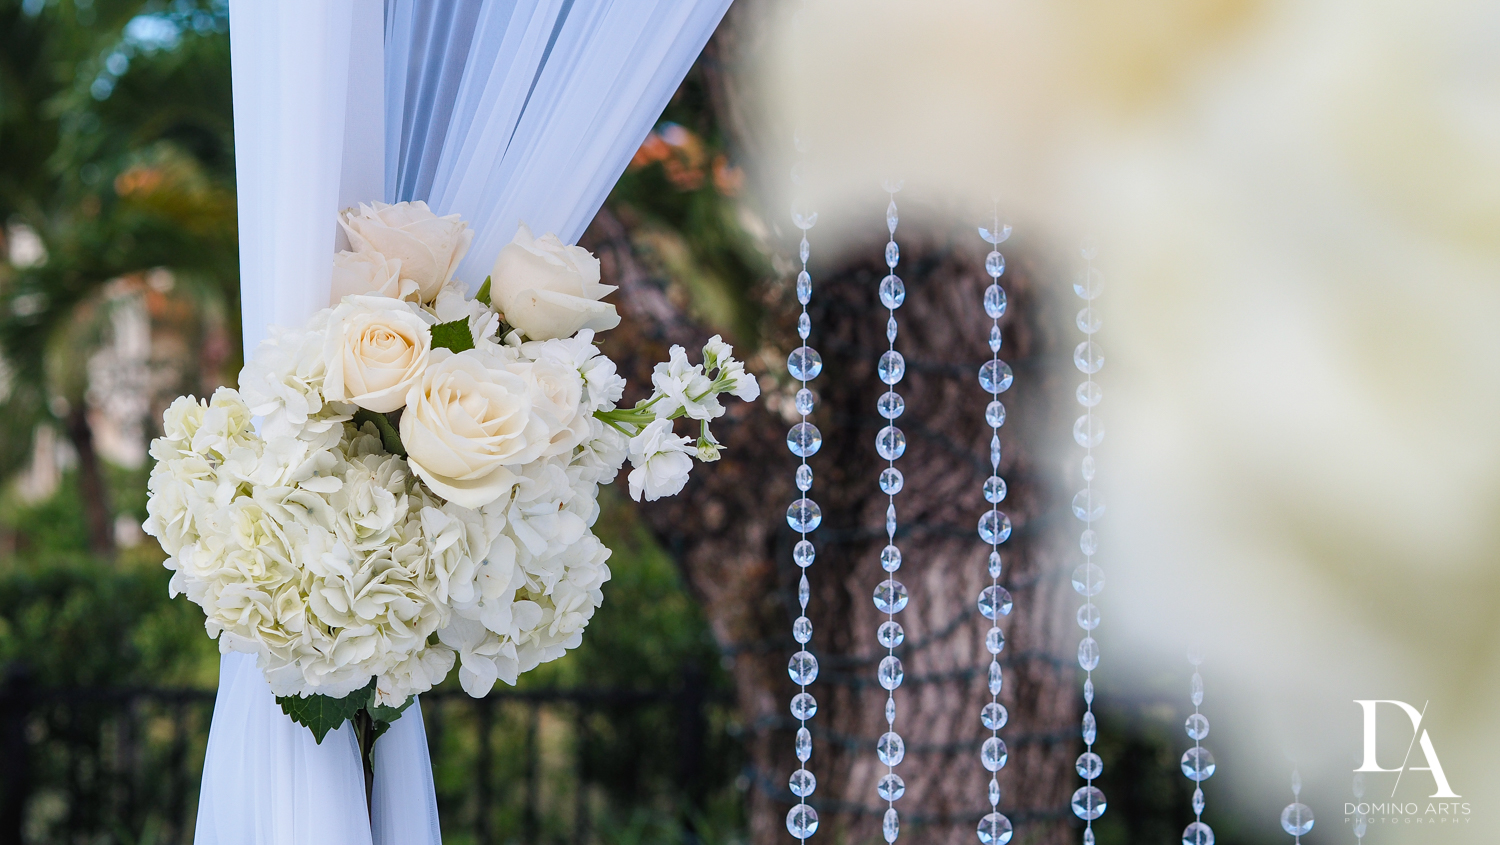 chuppah flowers at Beautiful Intimate Wedding at Mizner Country Club by Domino Arts Photography